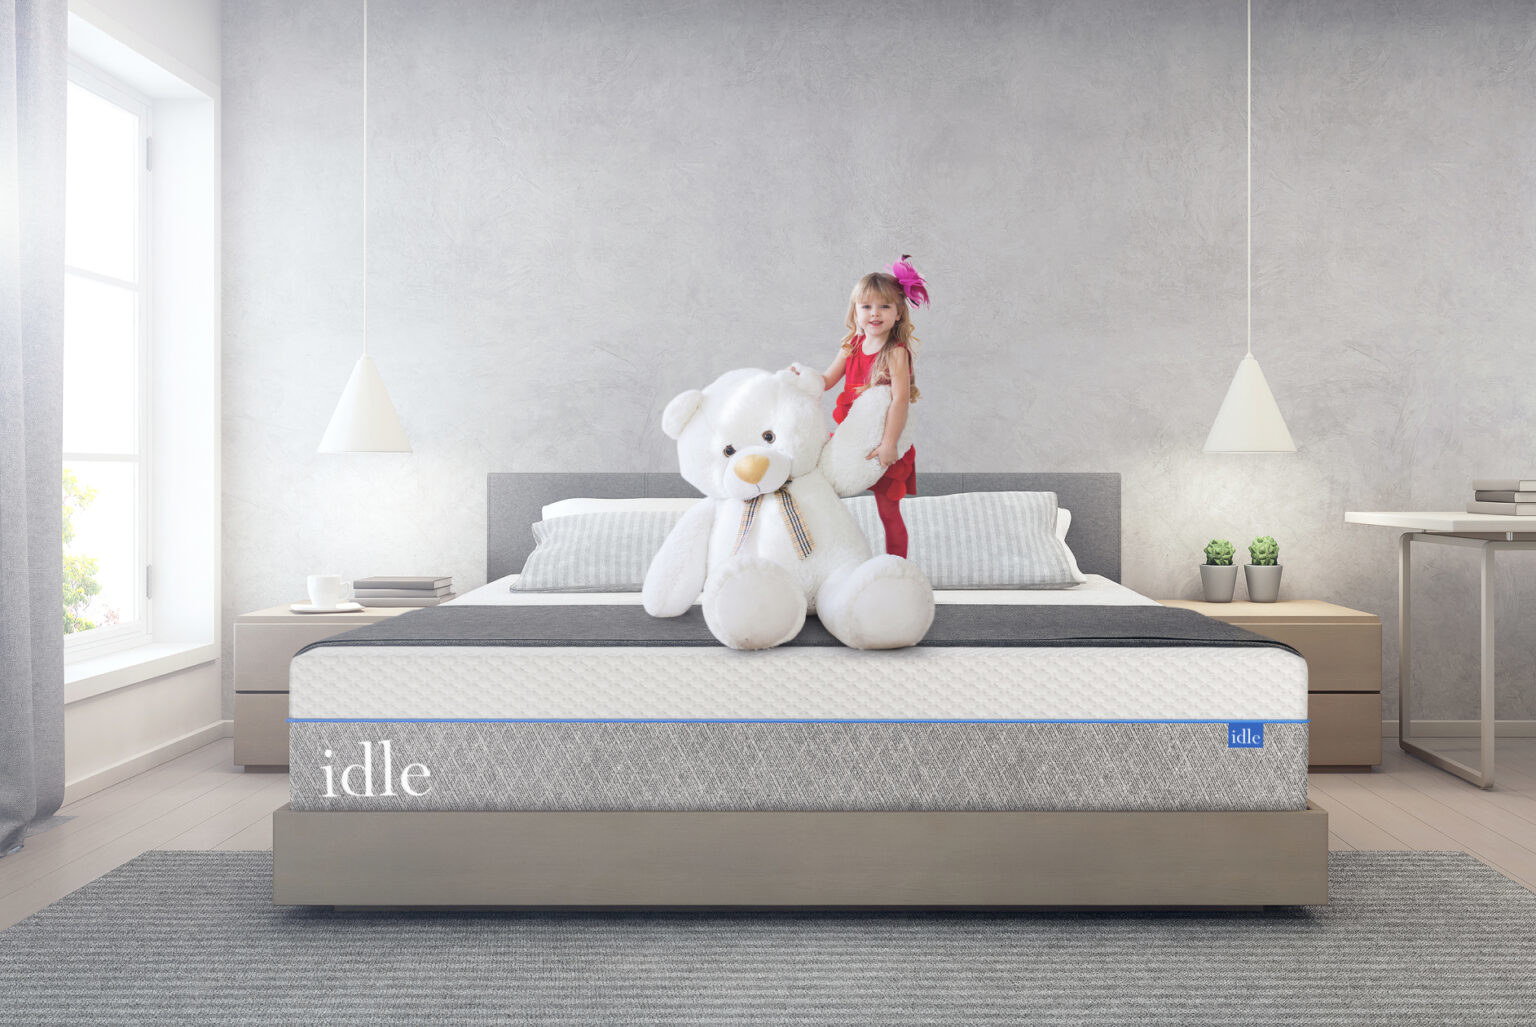 The idle mattress, plus two pillows staged in a room